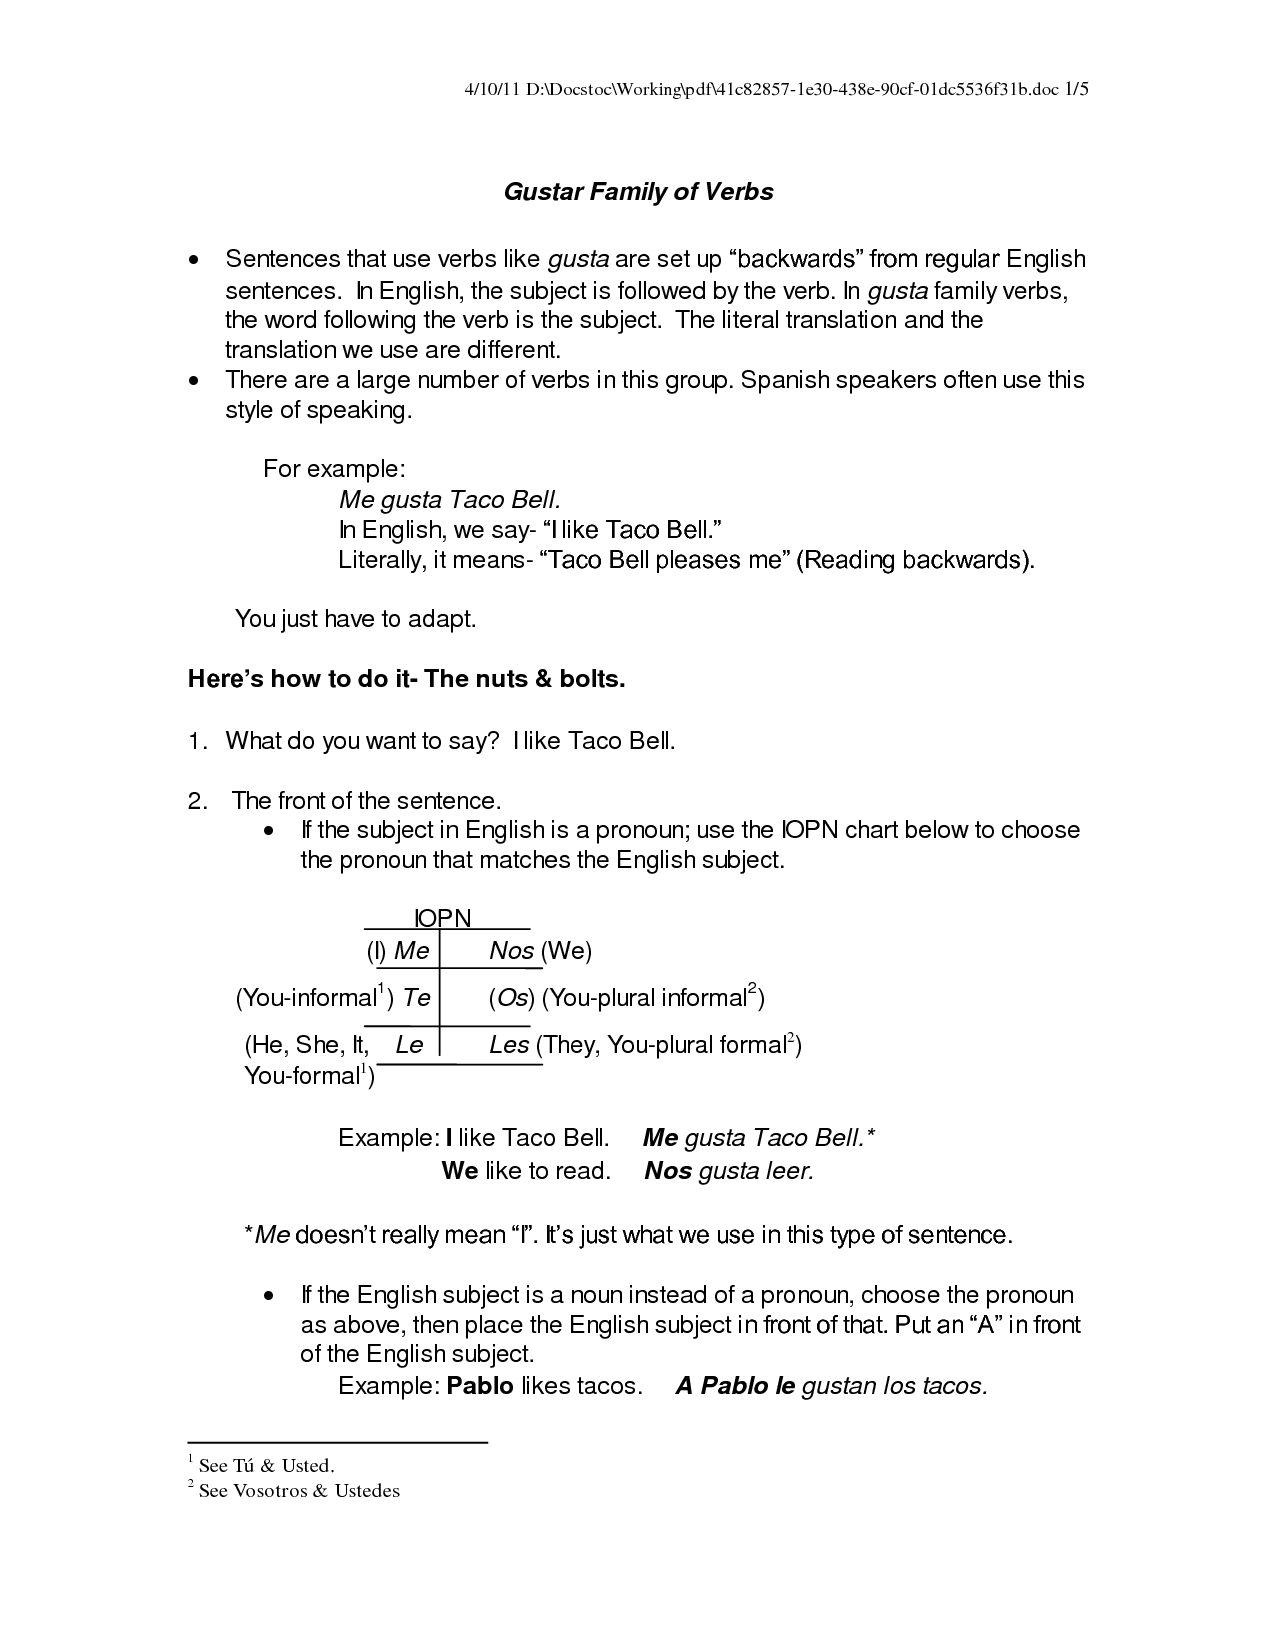 Worksheet Gustar And Similar Verbs Answer Key